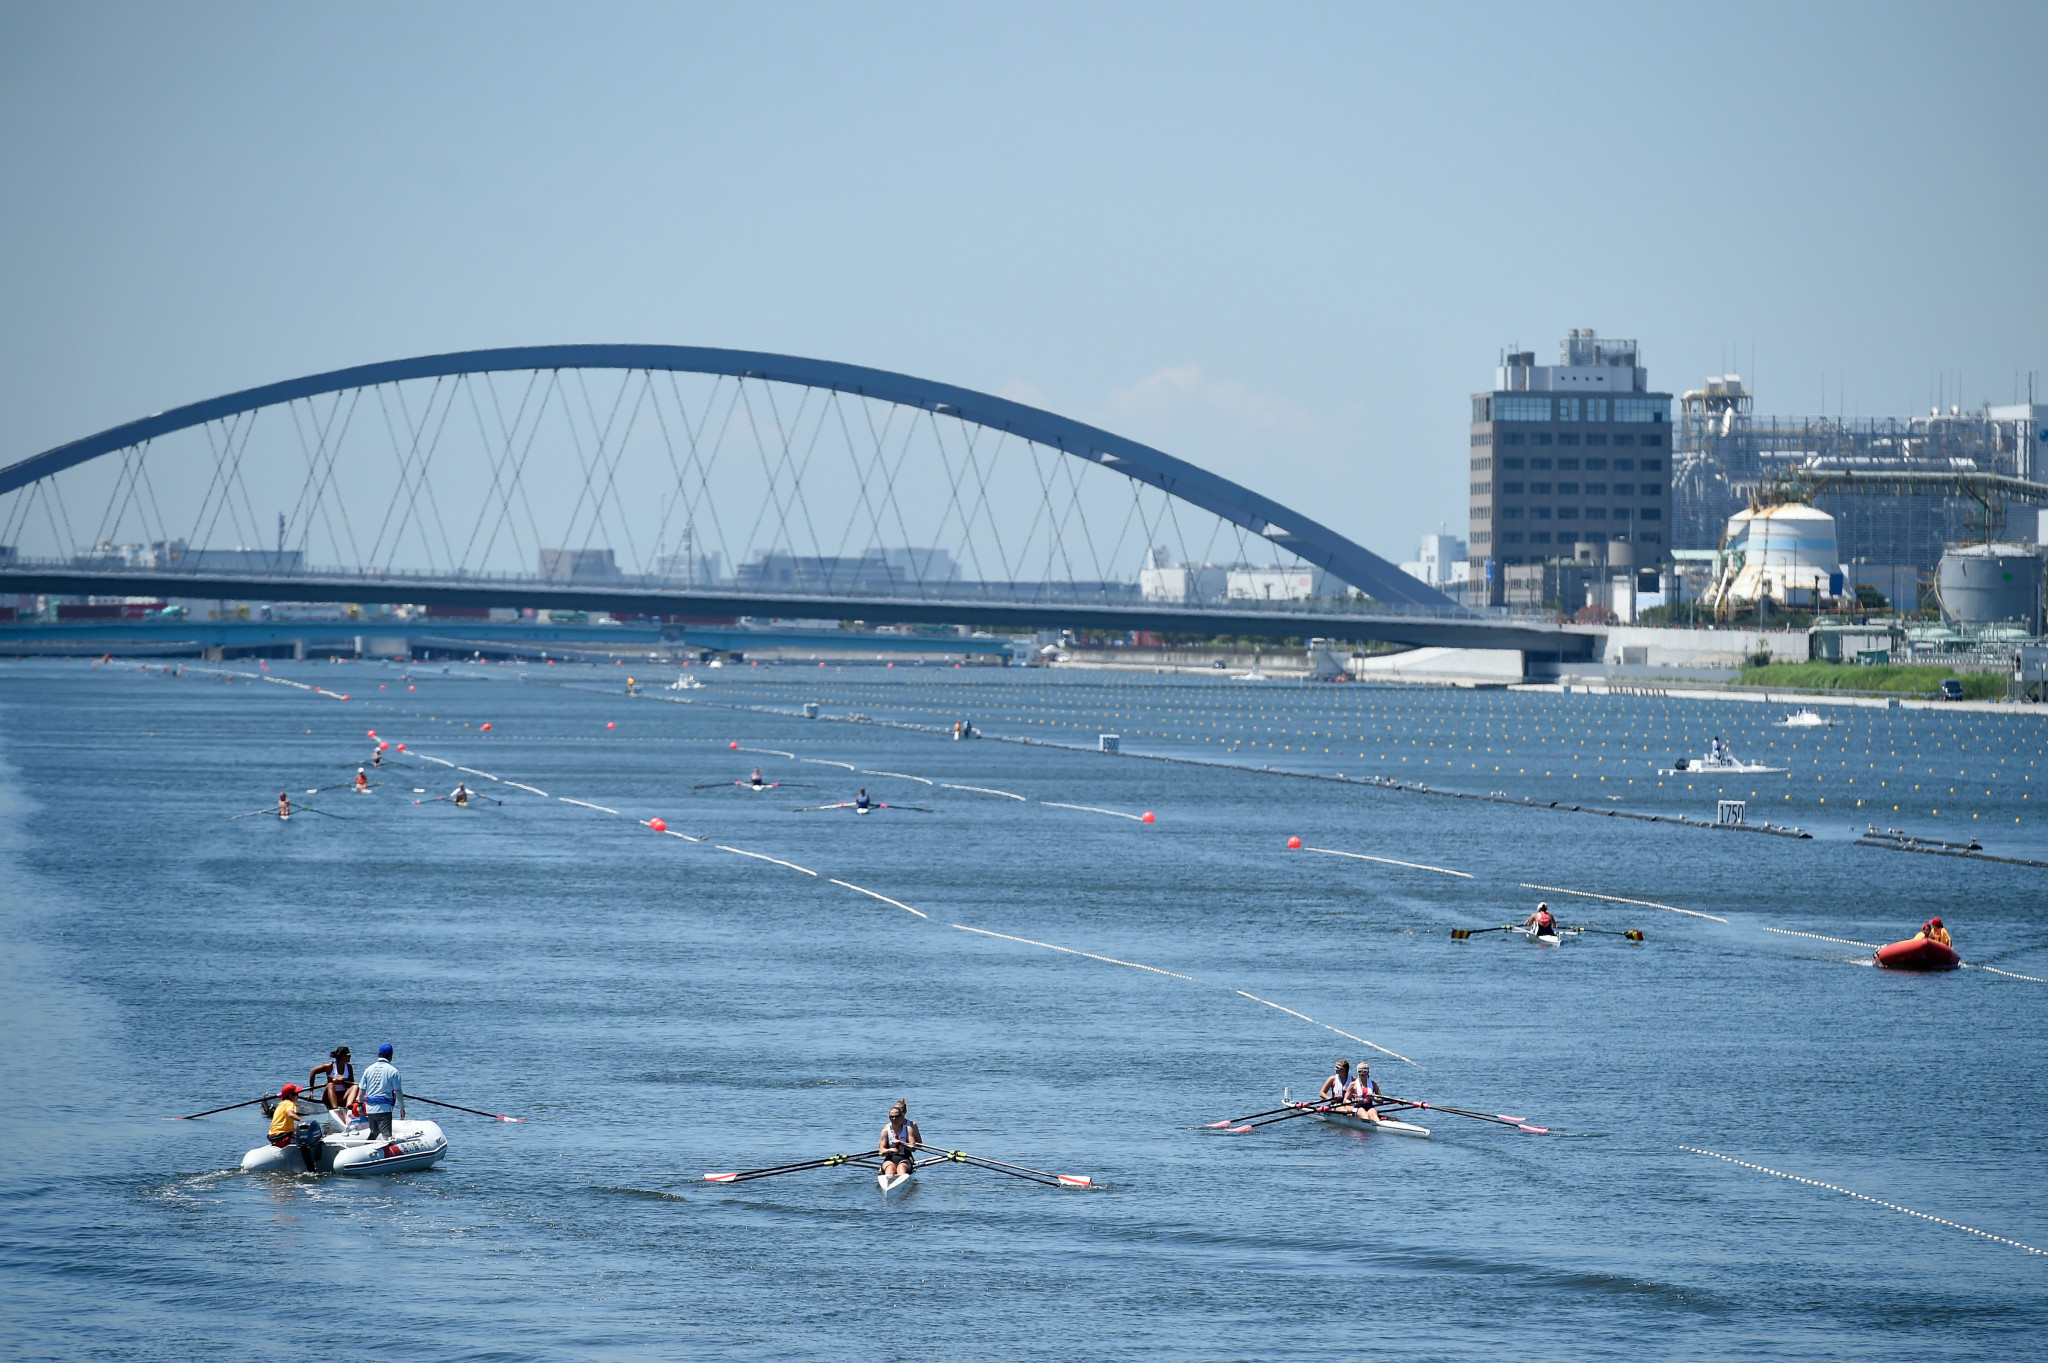 The Olympic Sea Forest Waterway venue is hosting competition  ©Getty Images